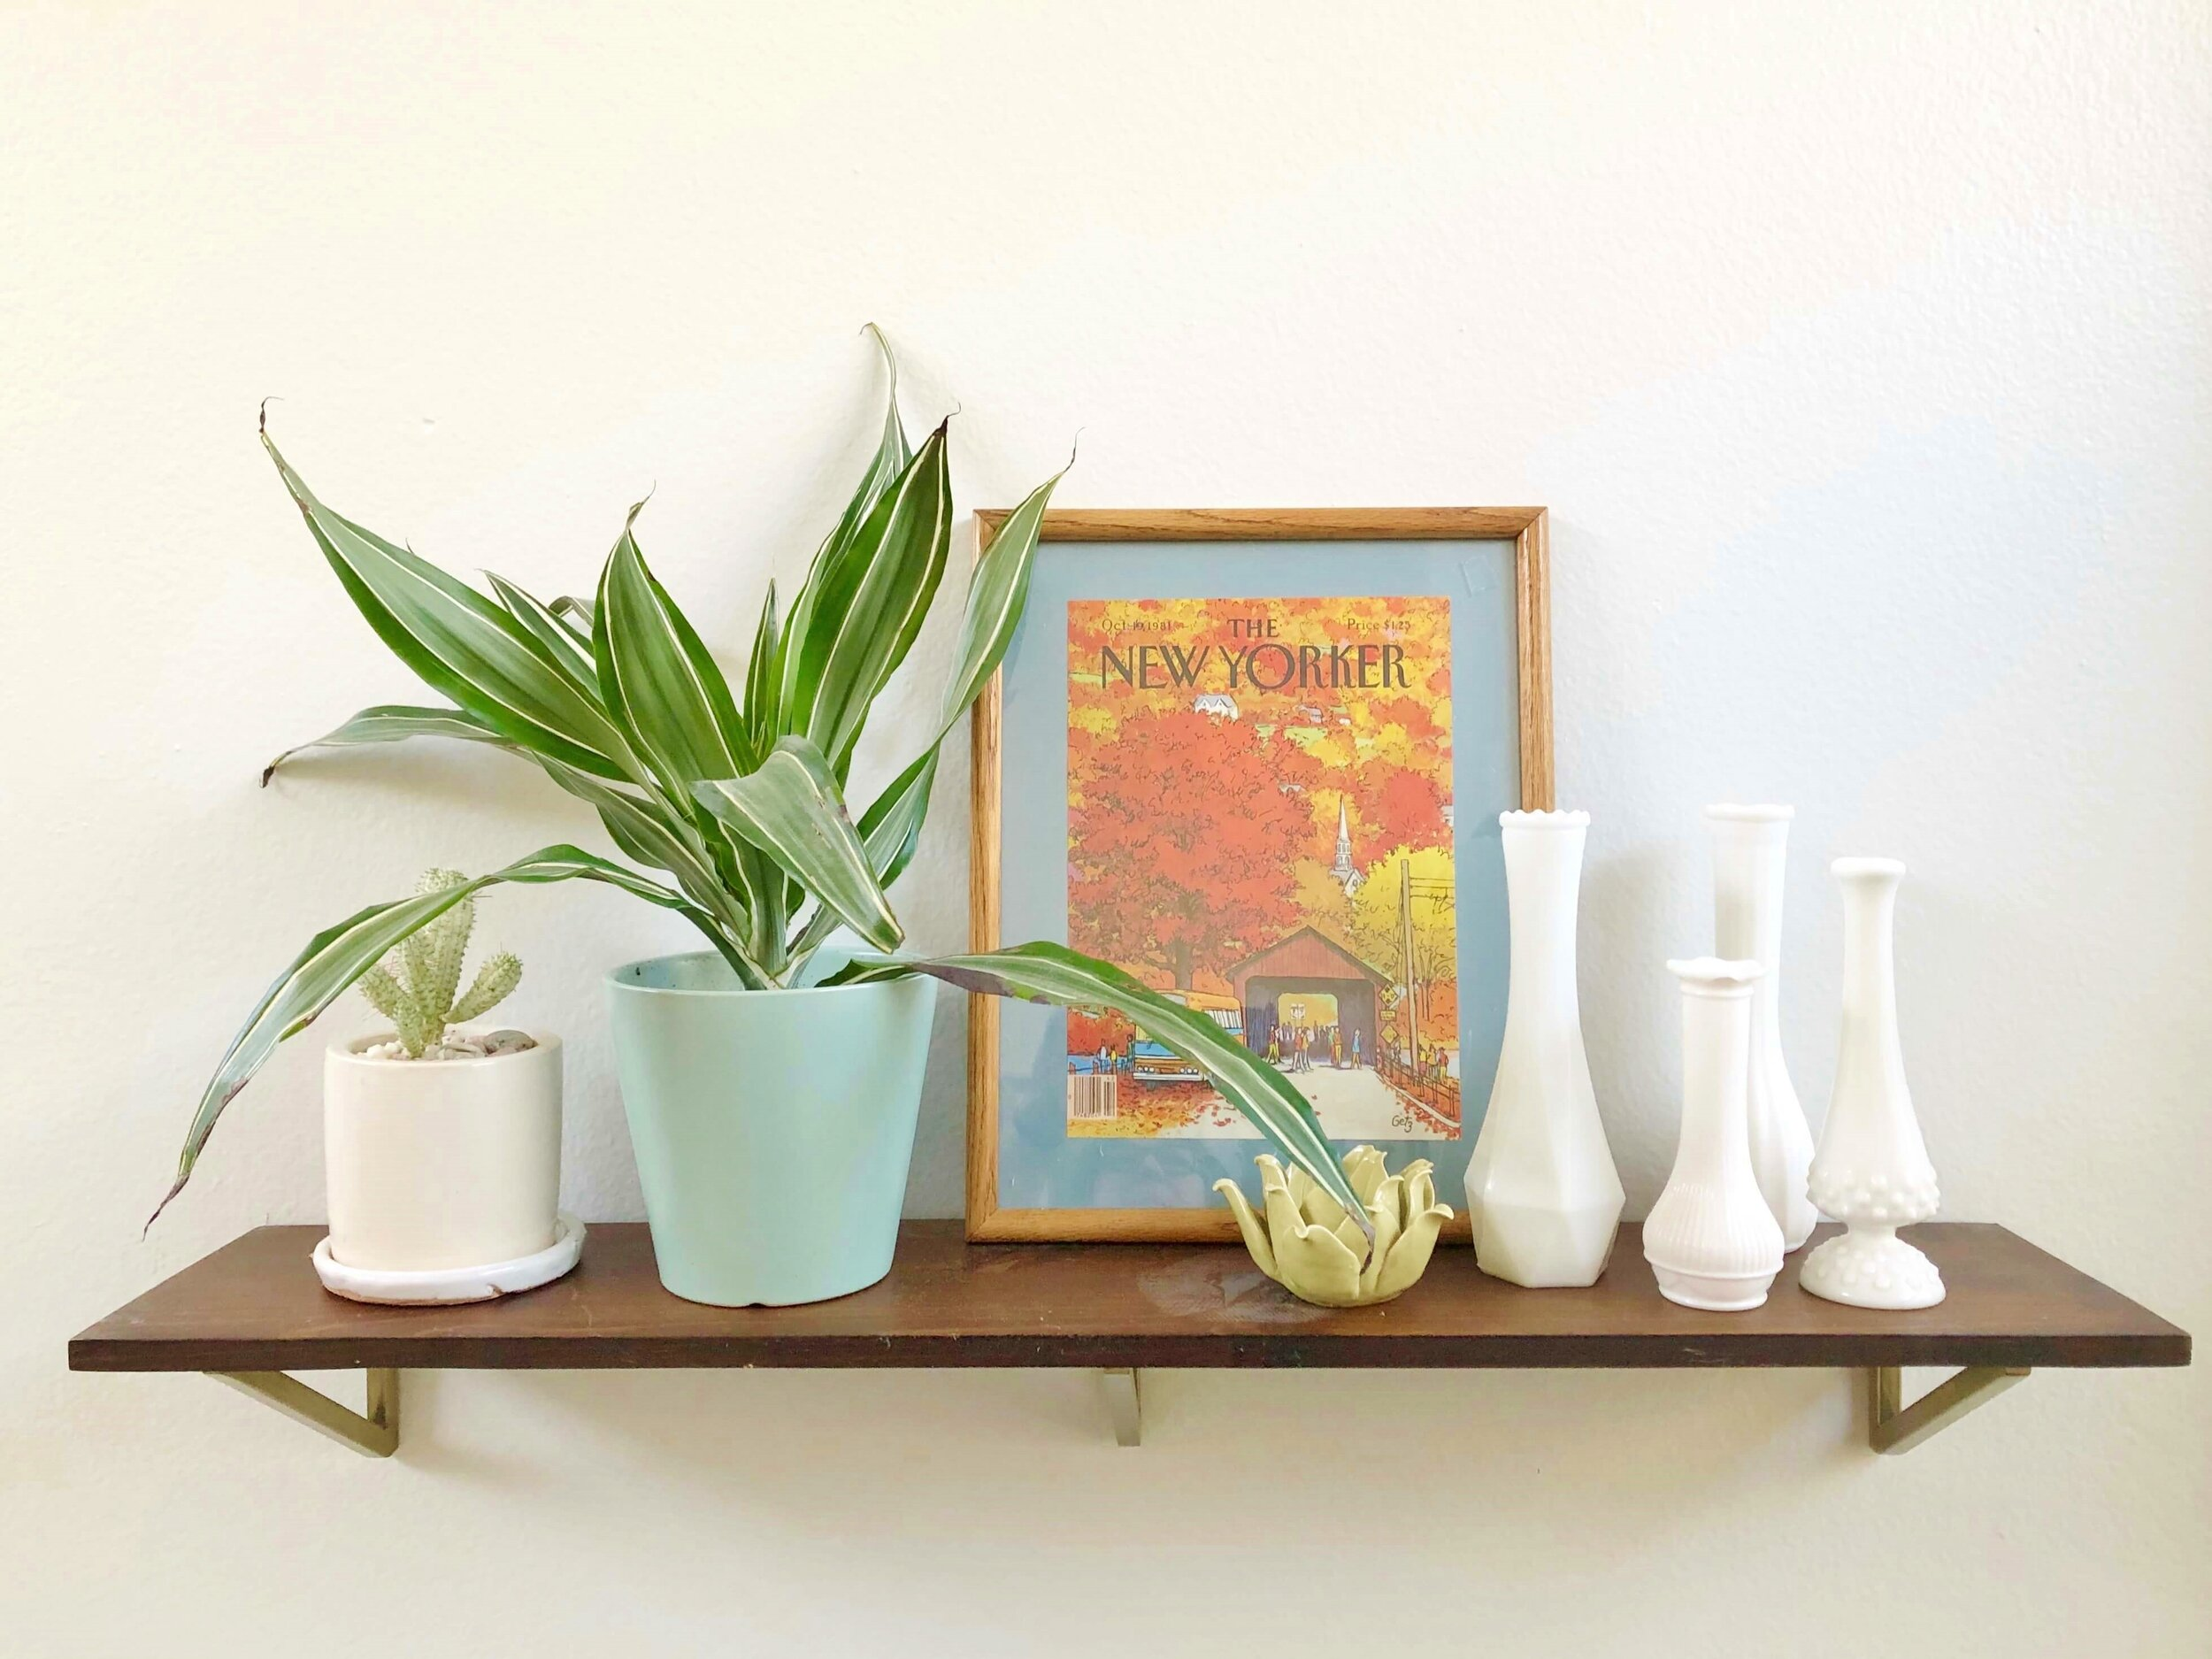 A combination of milk glass vases, plants and a vintage New Yorker cover all work together for shelf styling in a modern boho style. #modernboho #shelfstyling